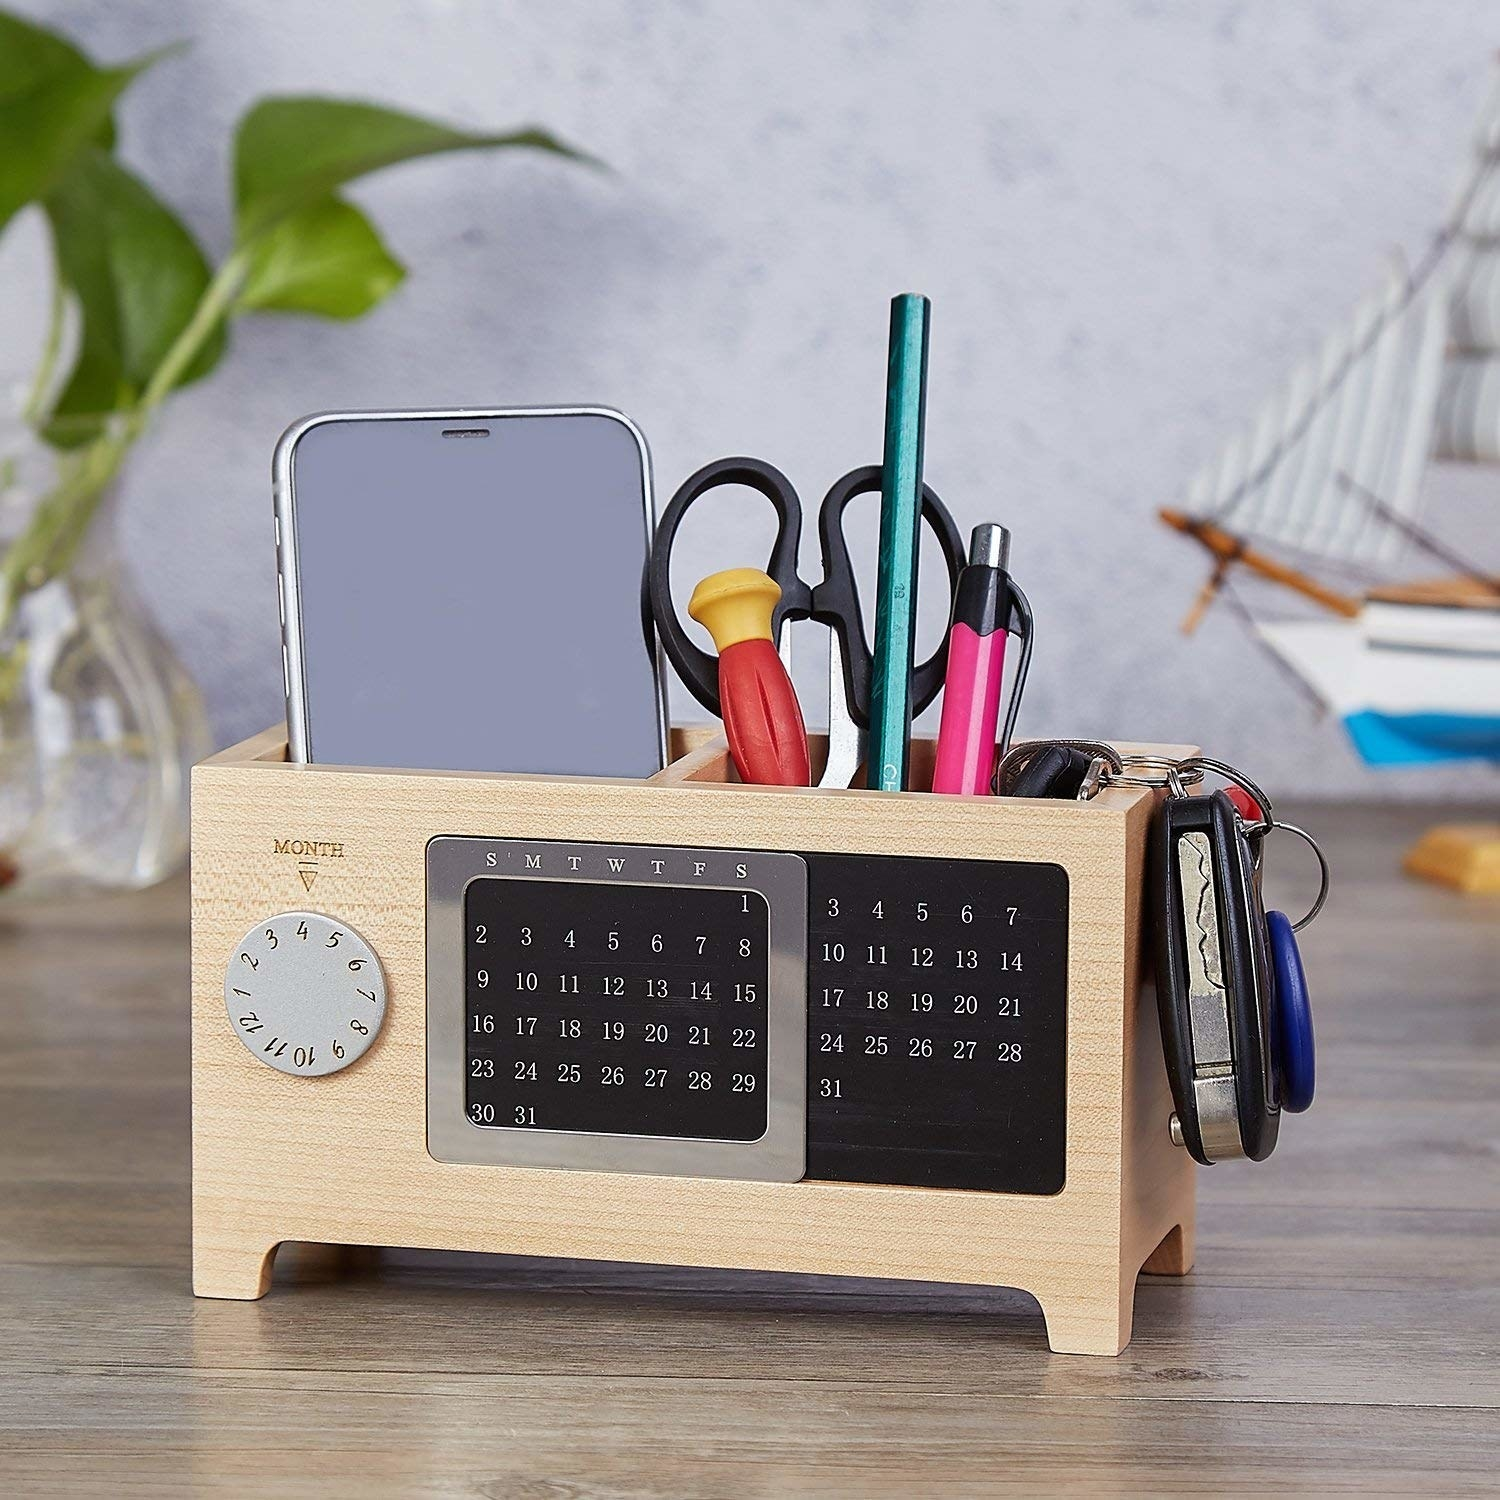 Pen holder in use on table